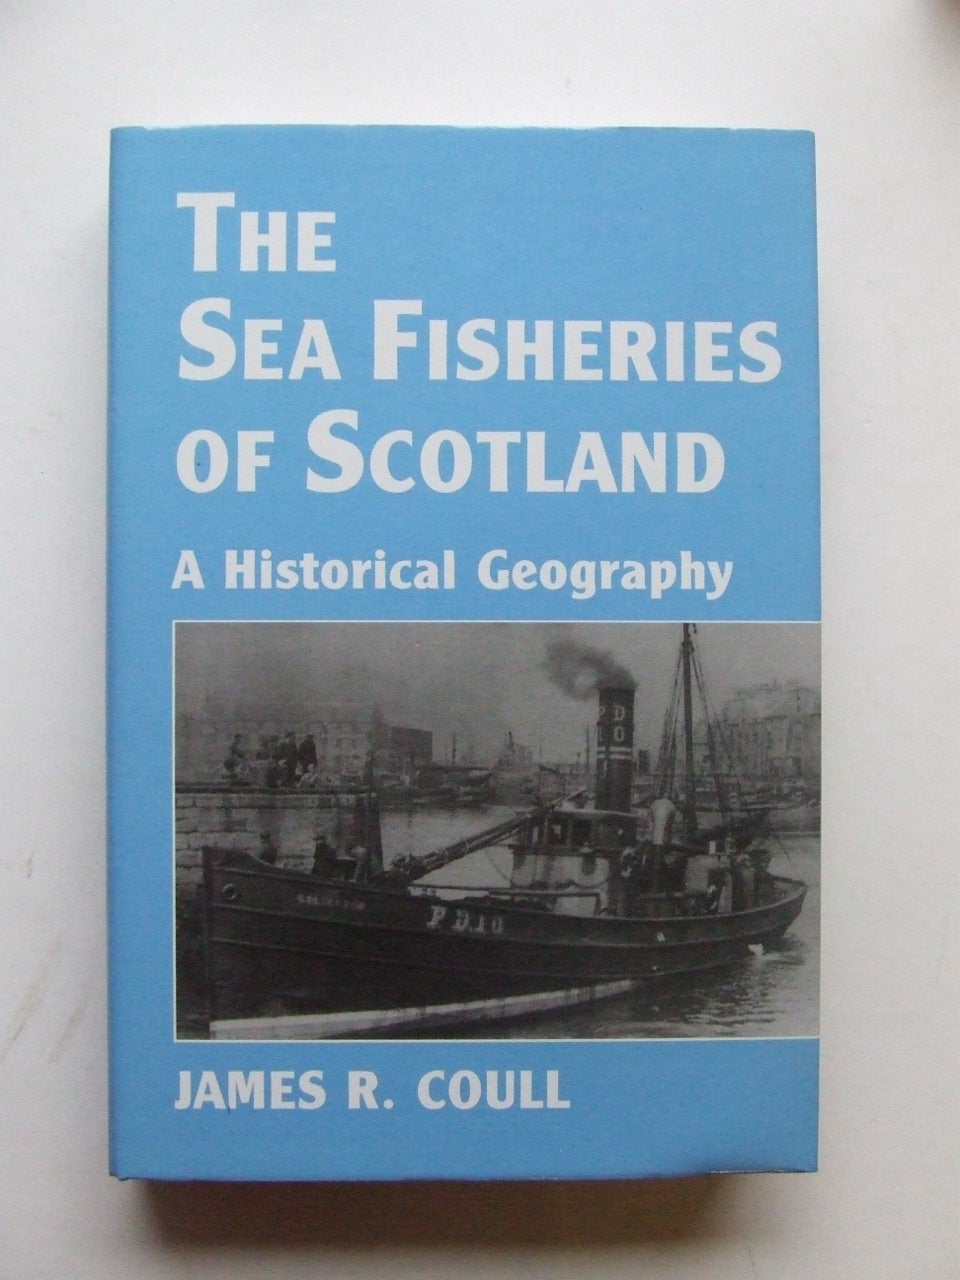 The Sea Fisheries of Scotland, a historical geography